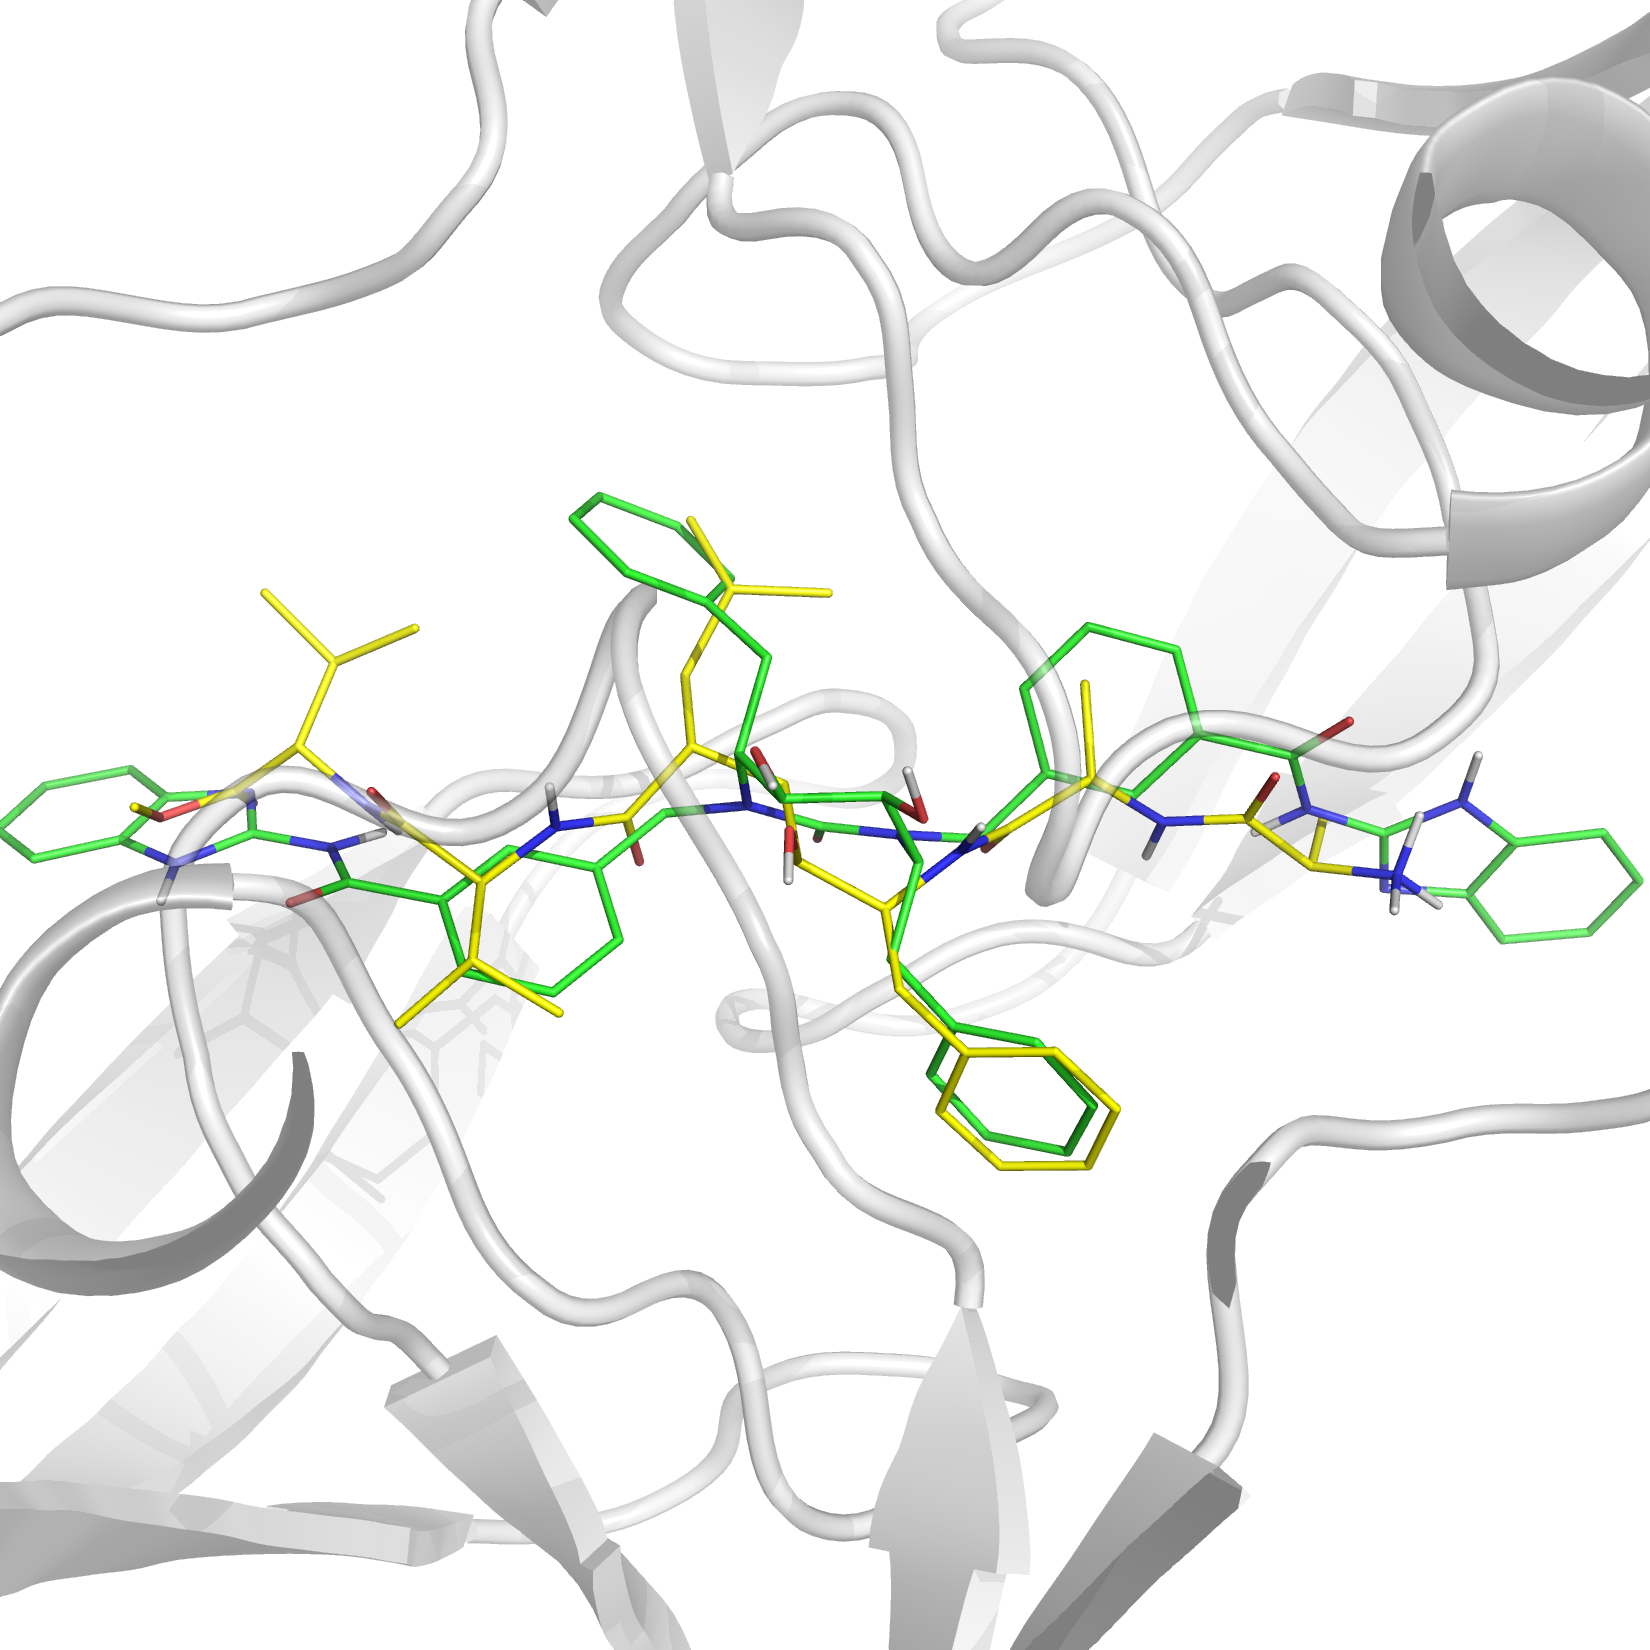 A virtual screening to find novel inhibitors for HIV protease was performed on the ZINC database.1 A critical part in virtual screening and associated techniques is preliminary database filtering and size reduction and for that purpose a novel feature matrix matching procedure was used. The reduction of ∼14 million available ligands to a subset of 14299 ligands was achieved with a structure based approach where the analysis of the 3D structure of the active site of the protease produced a graph with hydrogen bond donor, hydrogen bond acceptor and hydrophobic subsites represented as graph nodes. A similar treatment was also applied to the compound database content and the comparison of binding site and ligand graphs was used to preselect potentially active ligands. The resulting set was further subjected to docking. The algorithm used was able to find several novel as well as previously known and experimentally tested ligands, demonstrating the validity of the approach.